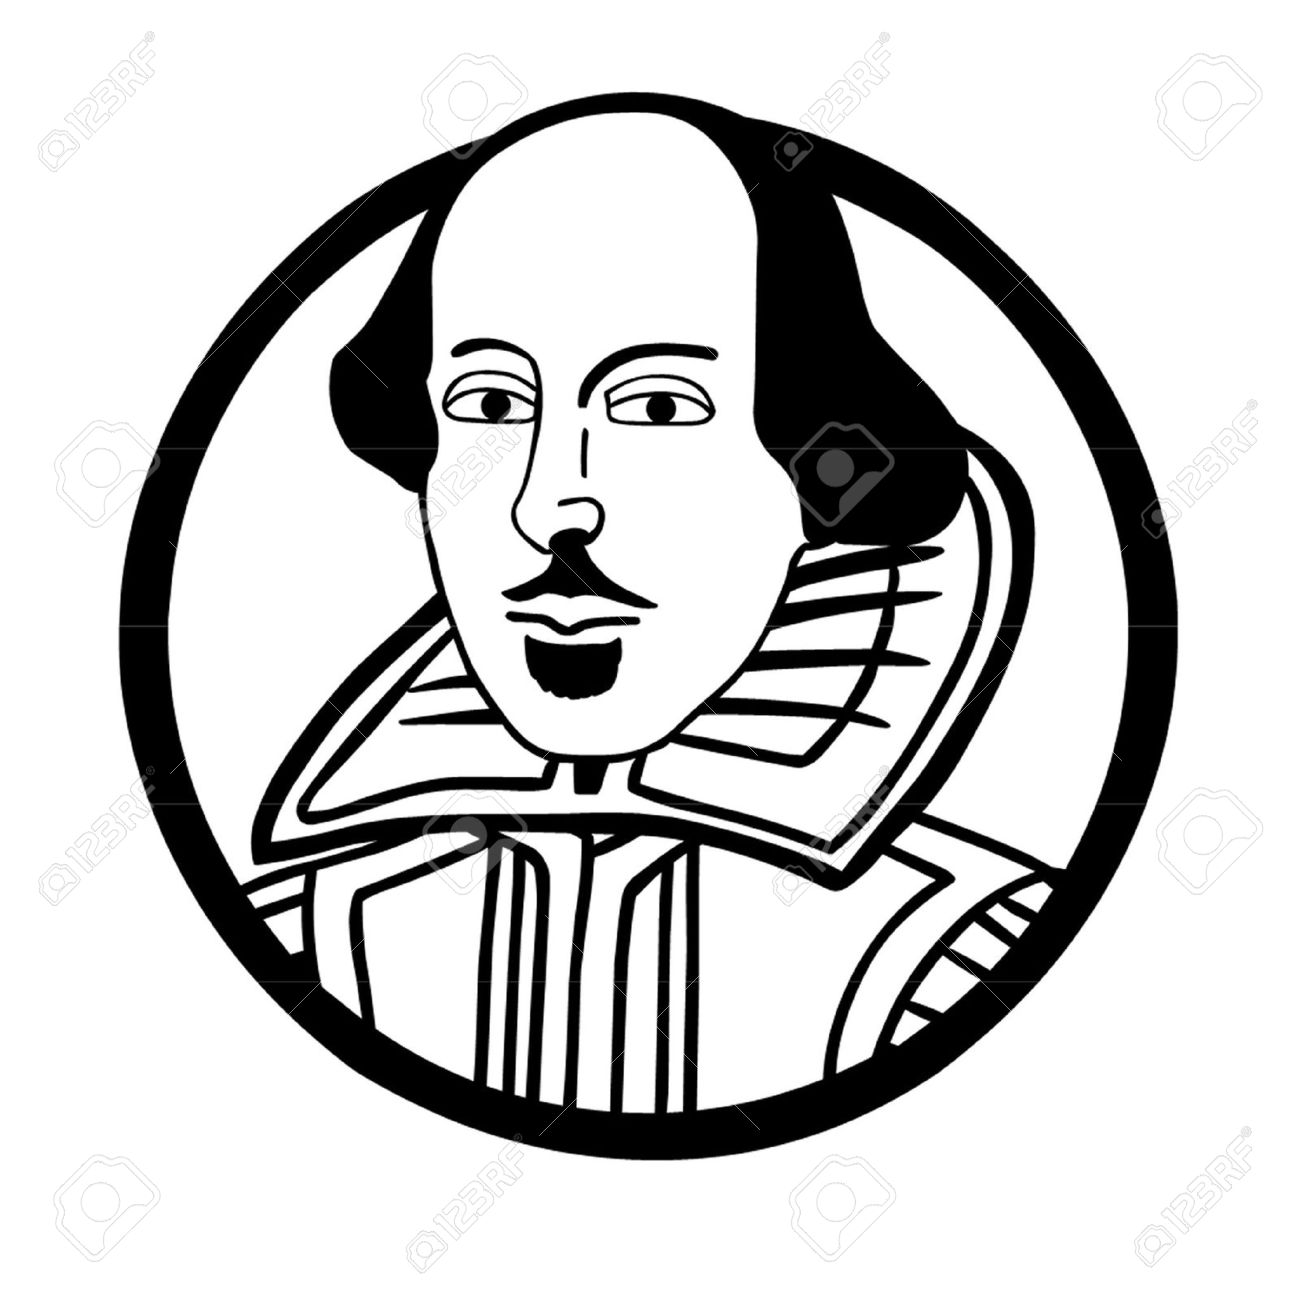 Shakespeare clipart 4 » Clipart Station.